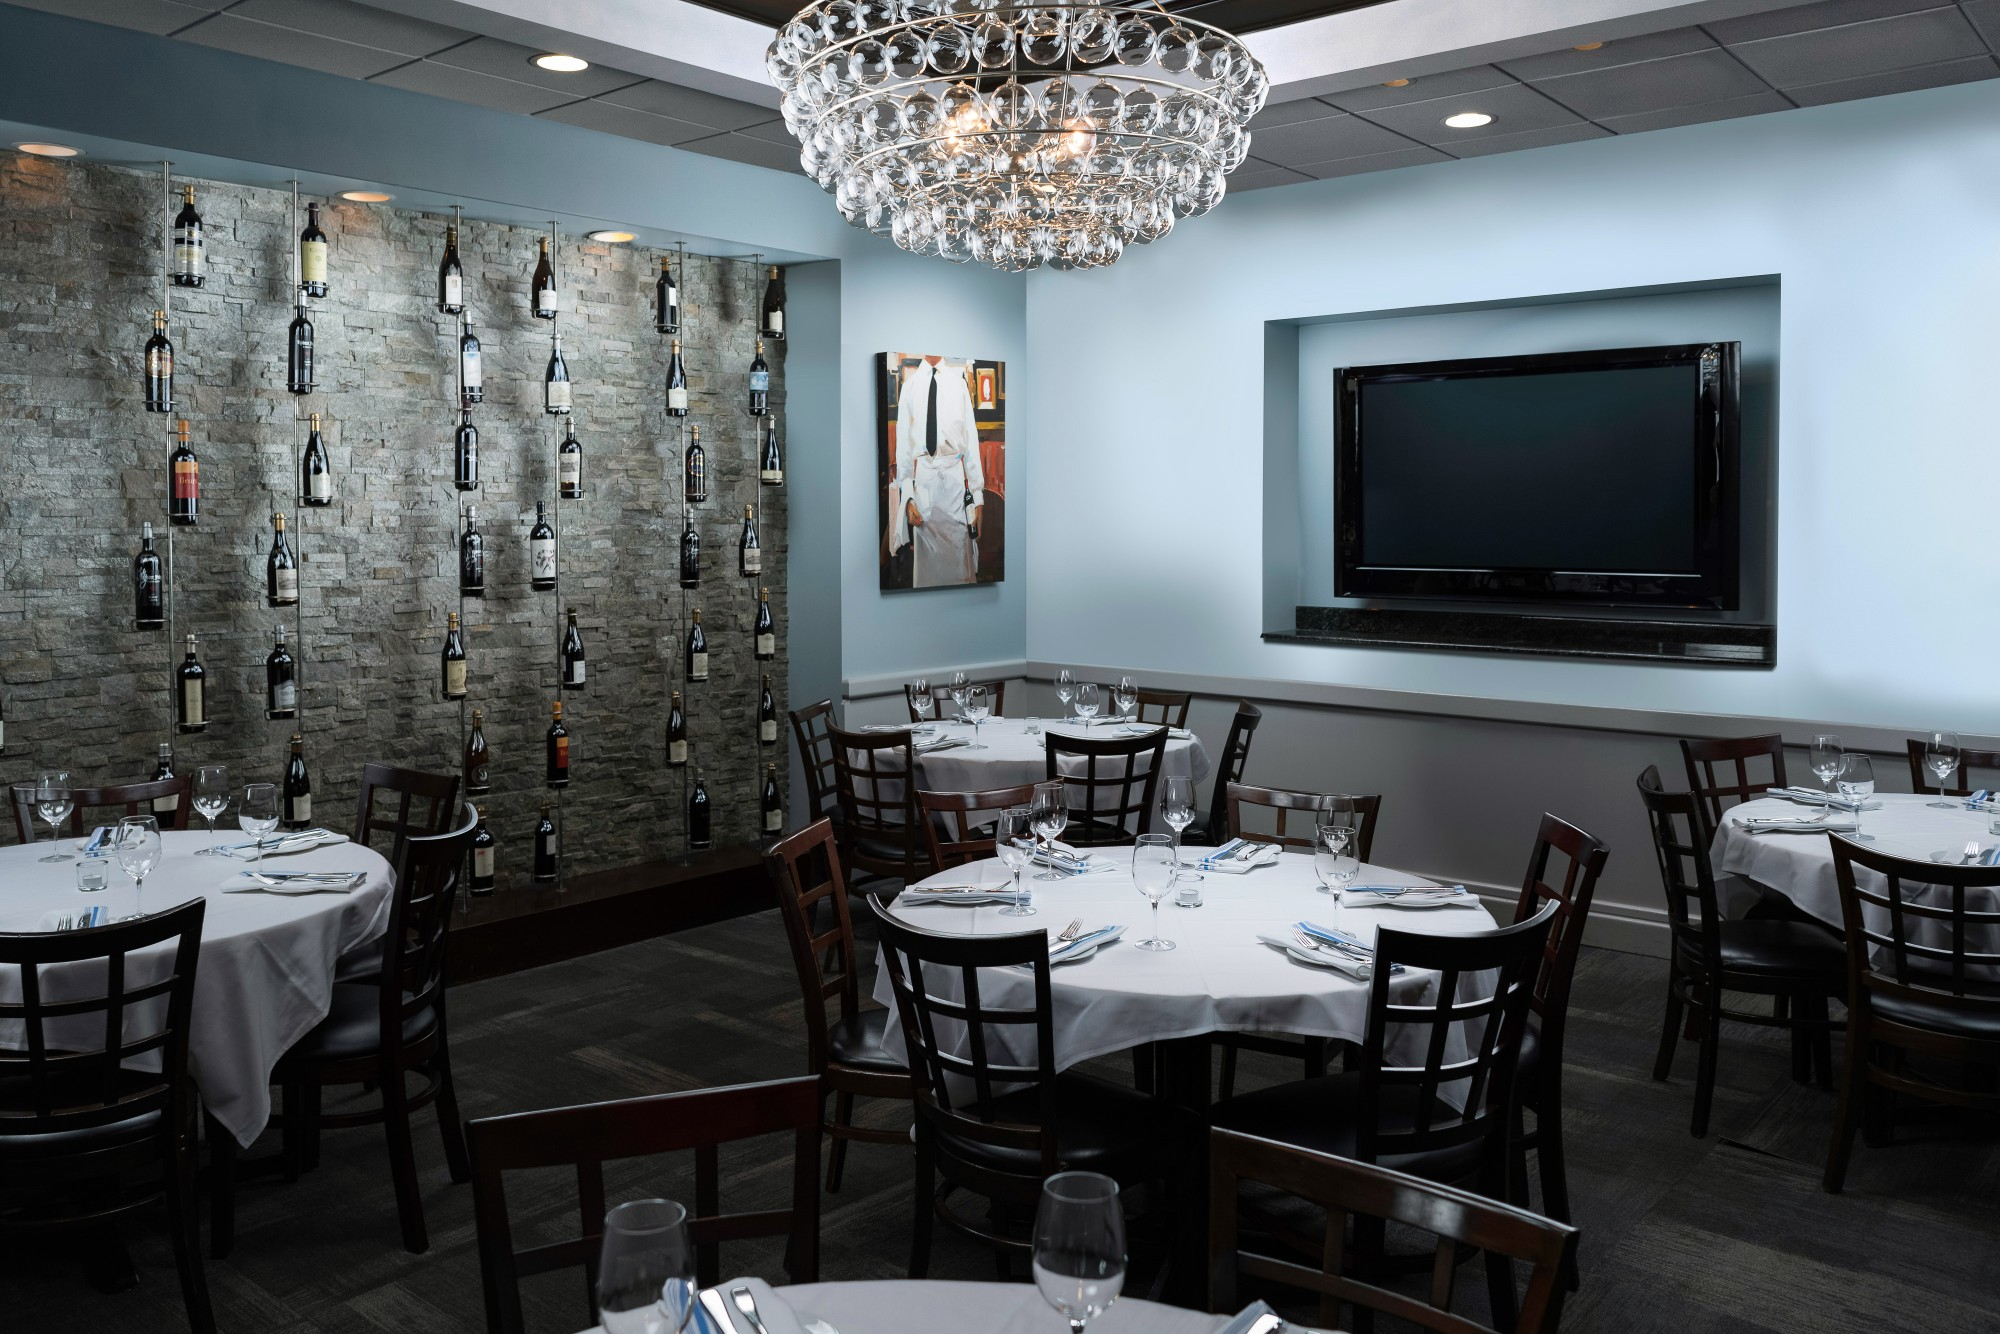 Private dining special events midtown grille for Best private dining rooms midtown